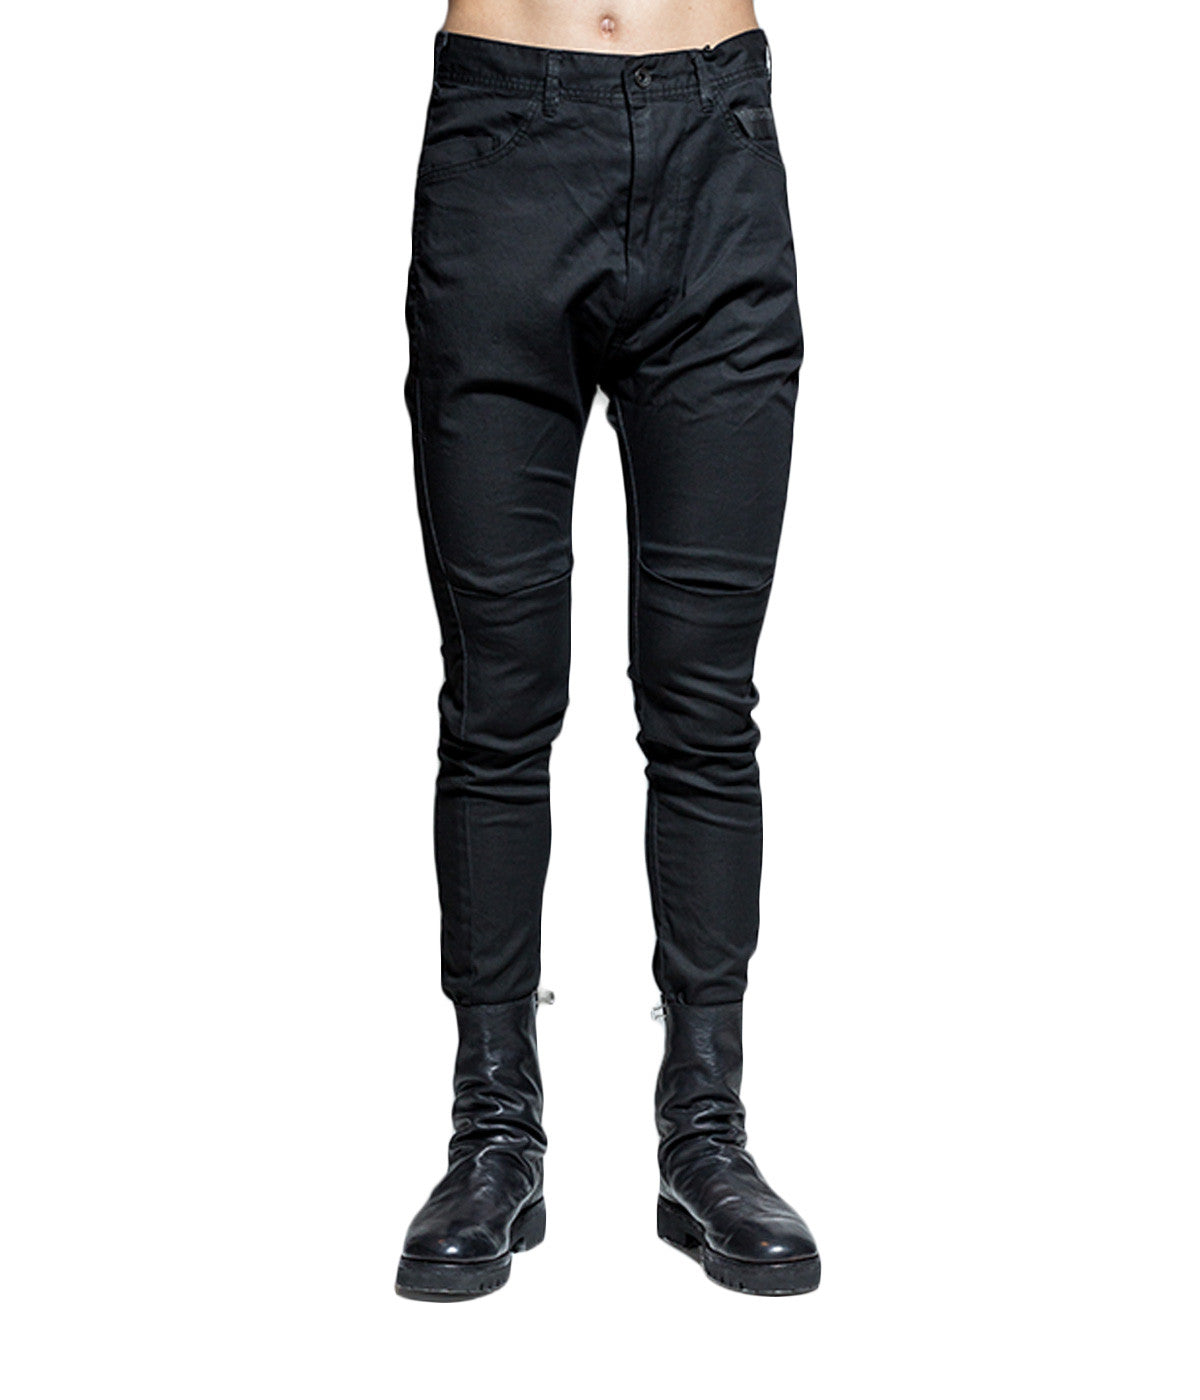 Pleated Knee Trousers